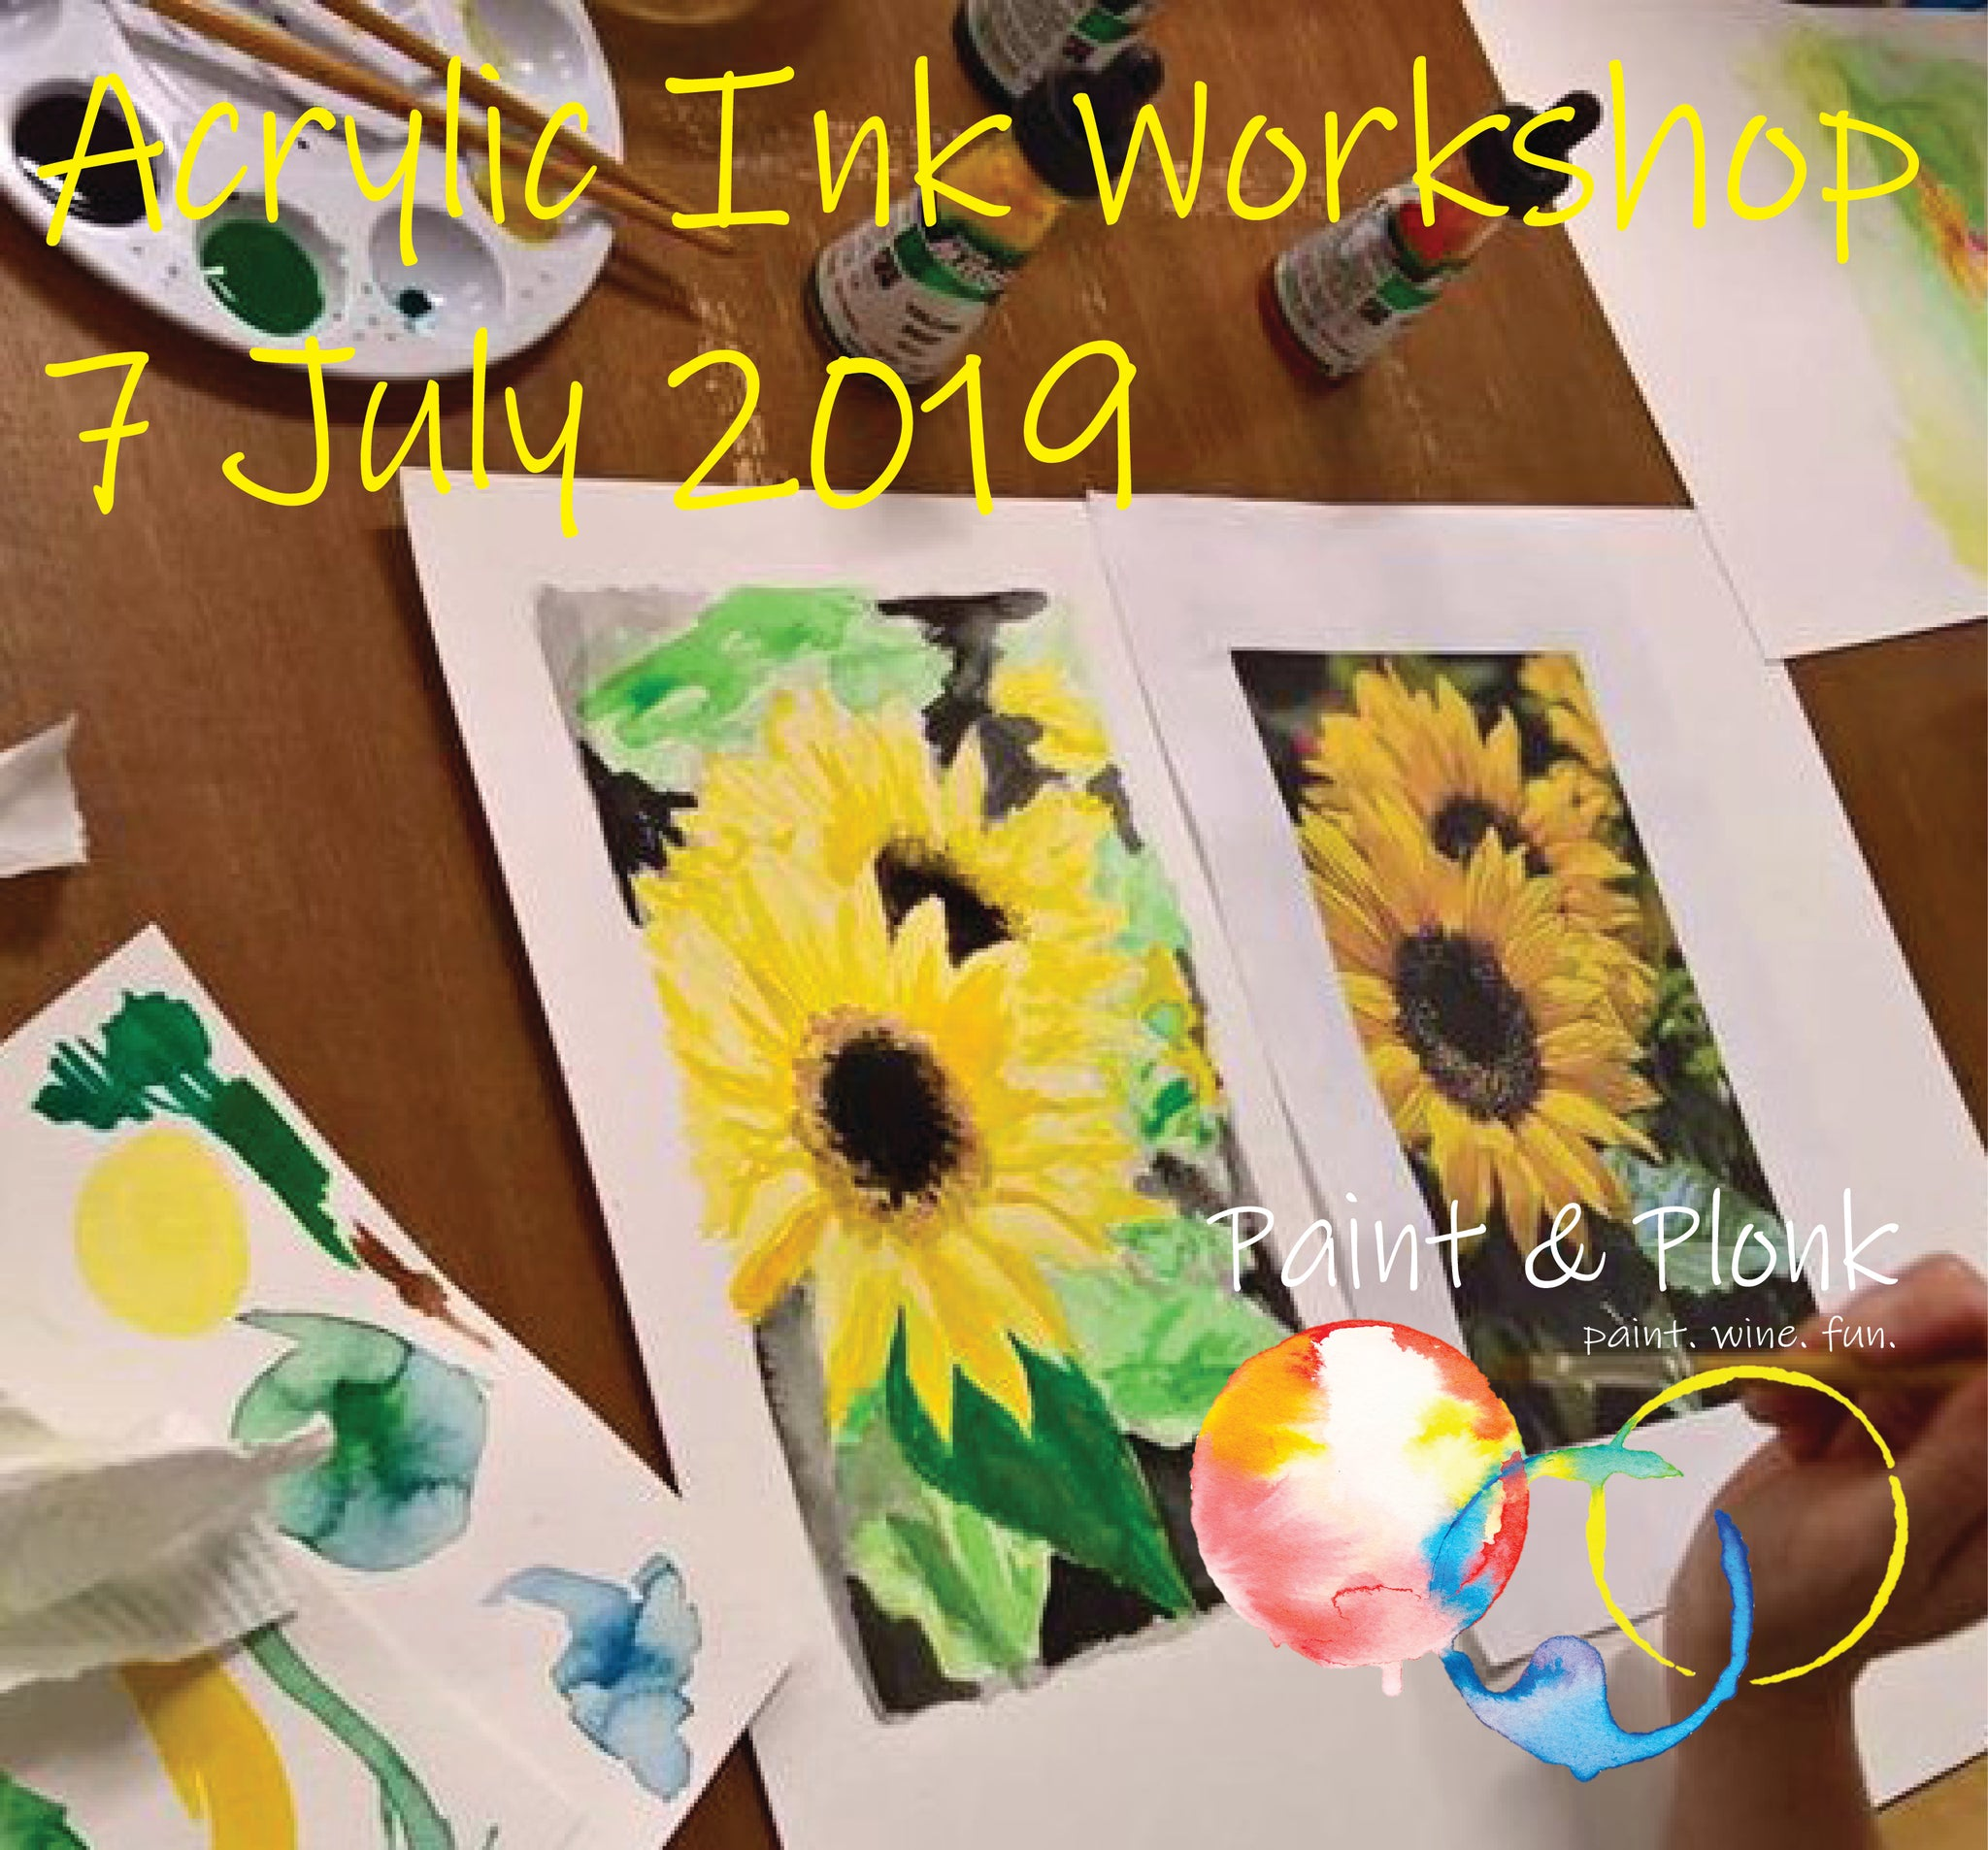 Paint & Plonk Acrylic Ink Workshop at Peter Lehmann Wines